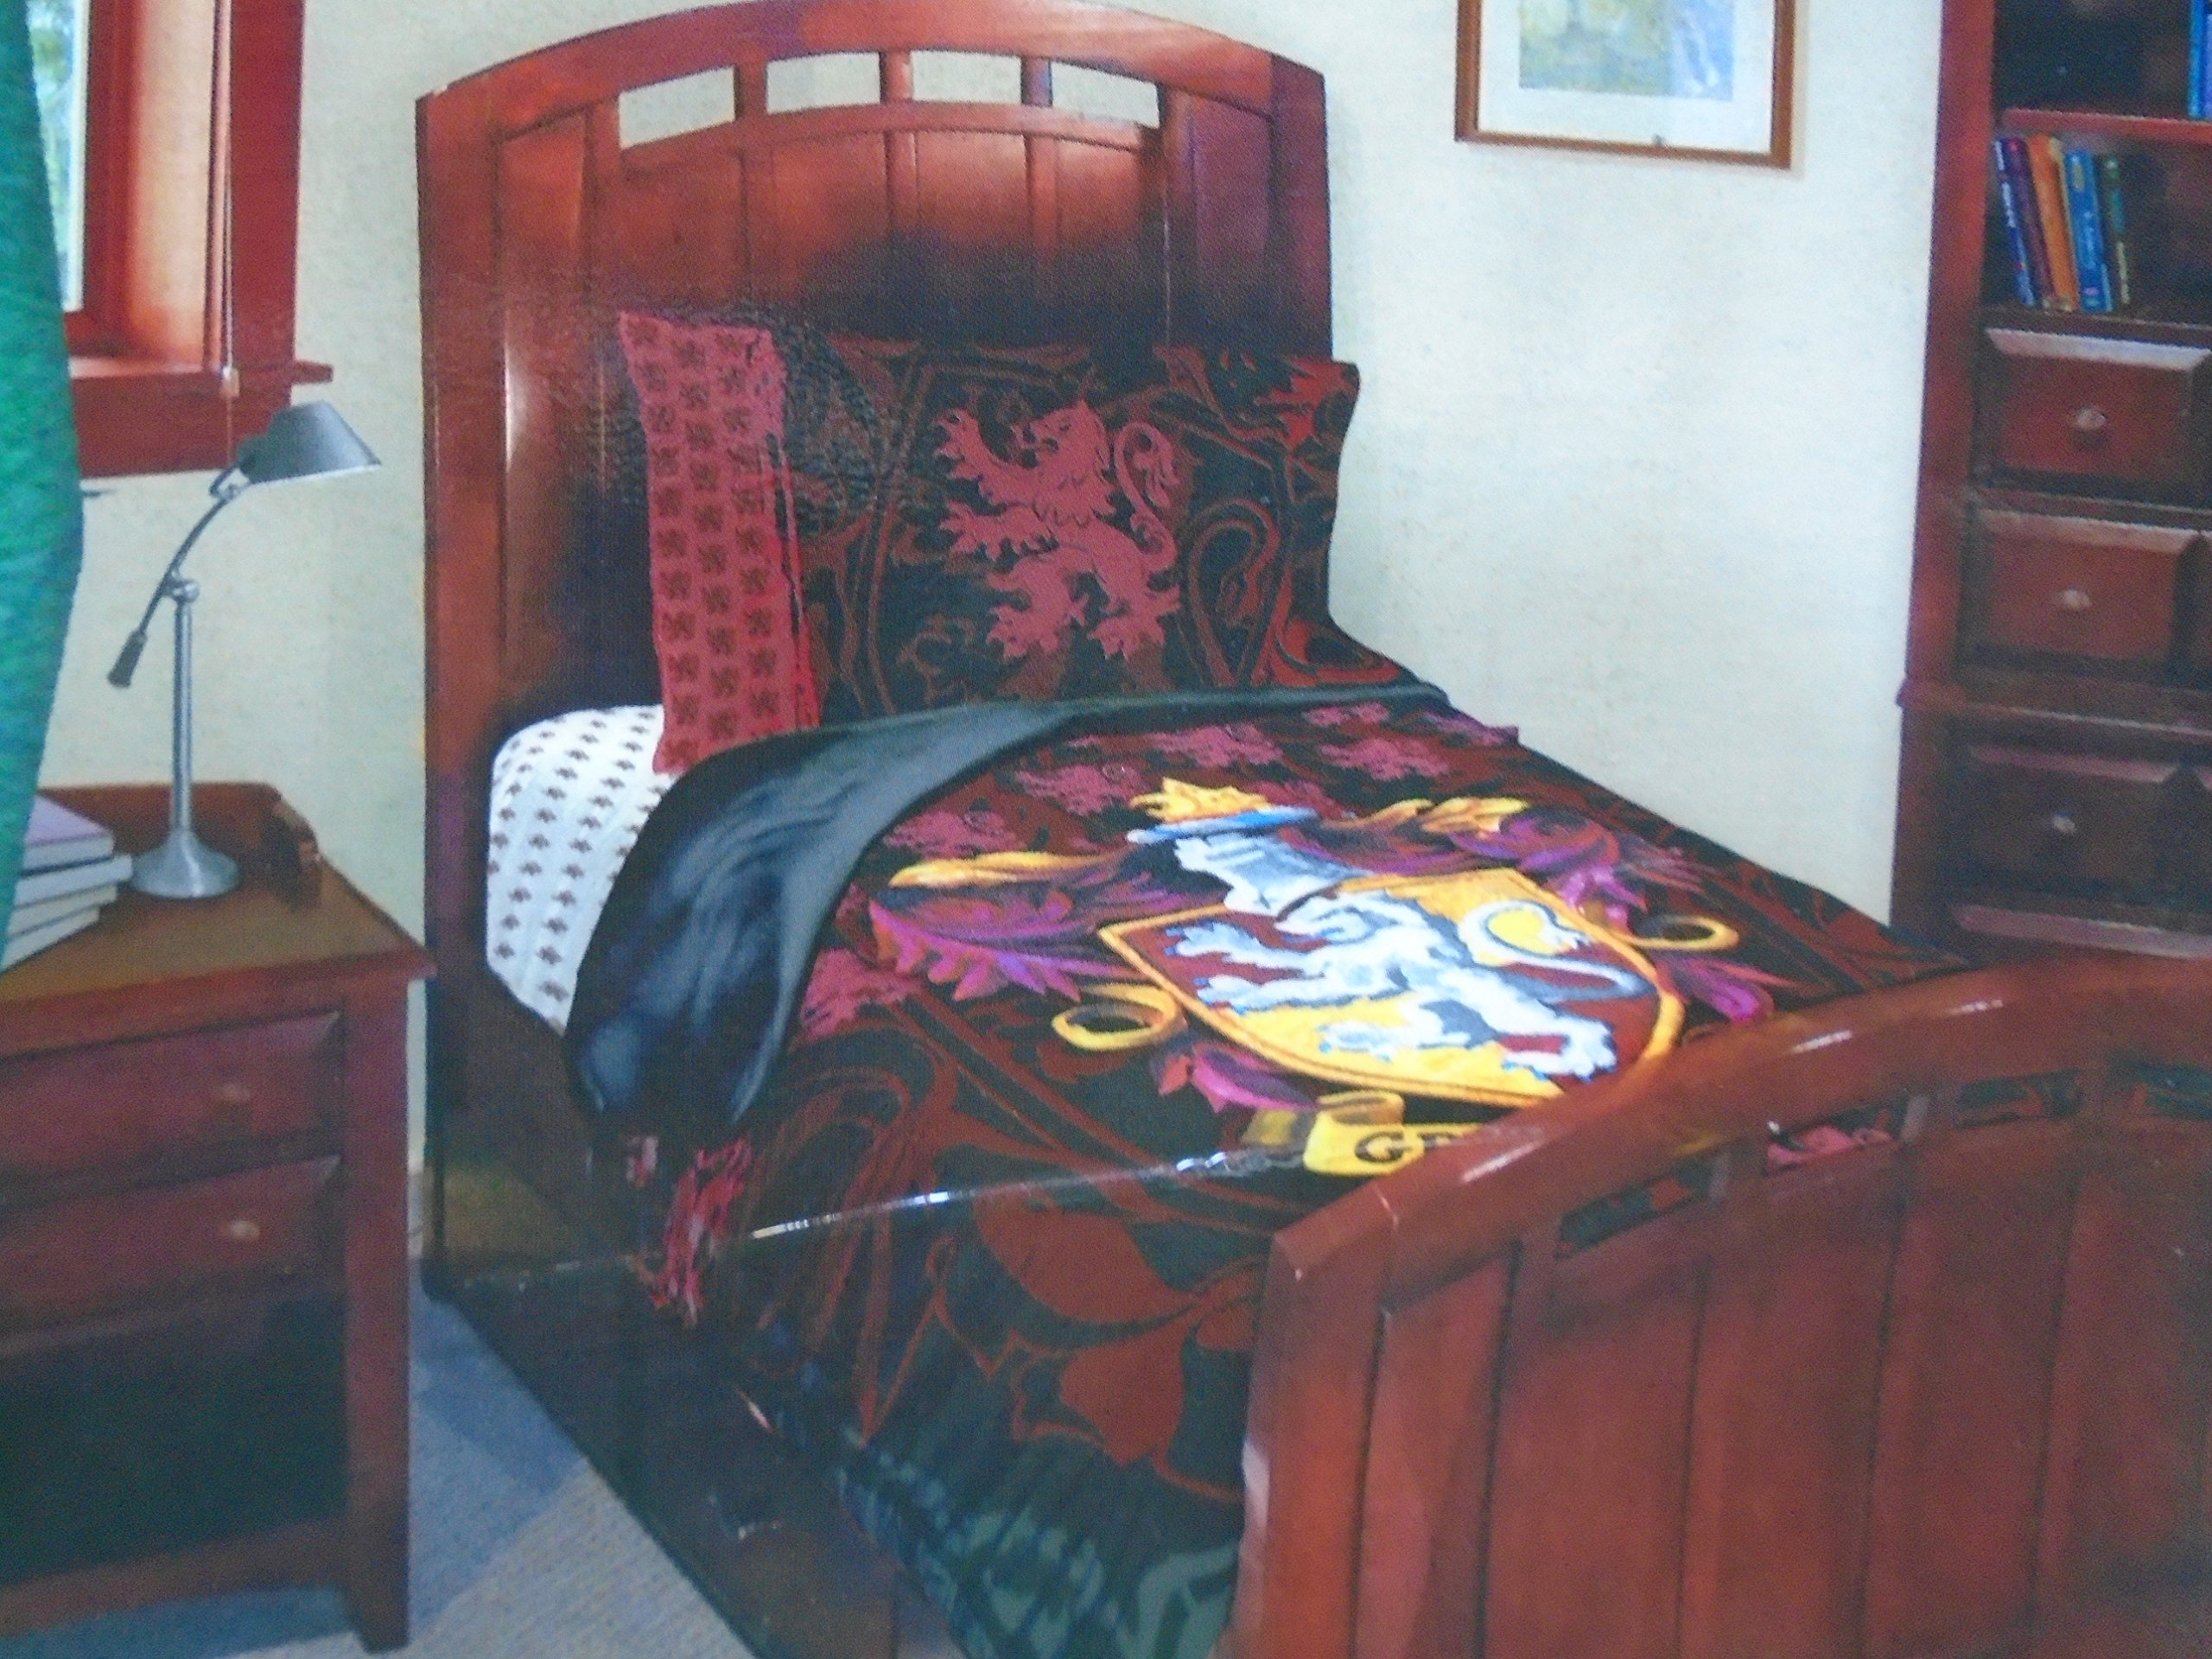 Harry Potter Order of the Phoenix ''Gryffindor House'' Twin Comforter and Pillowcase Set